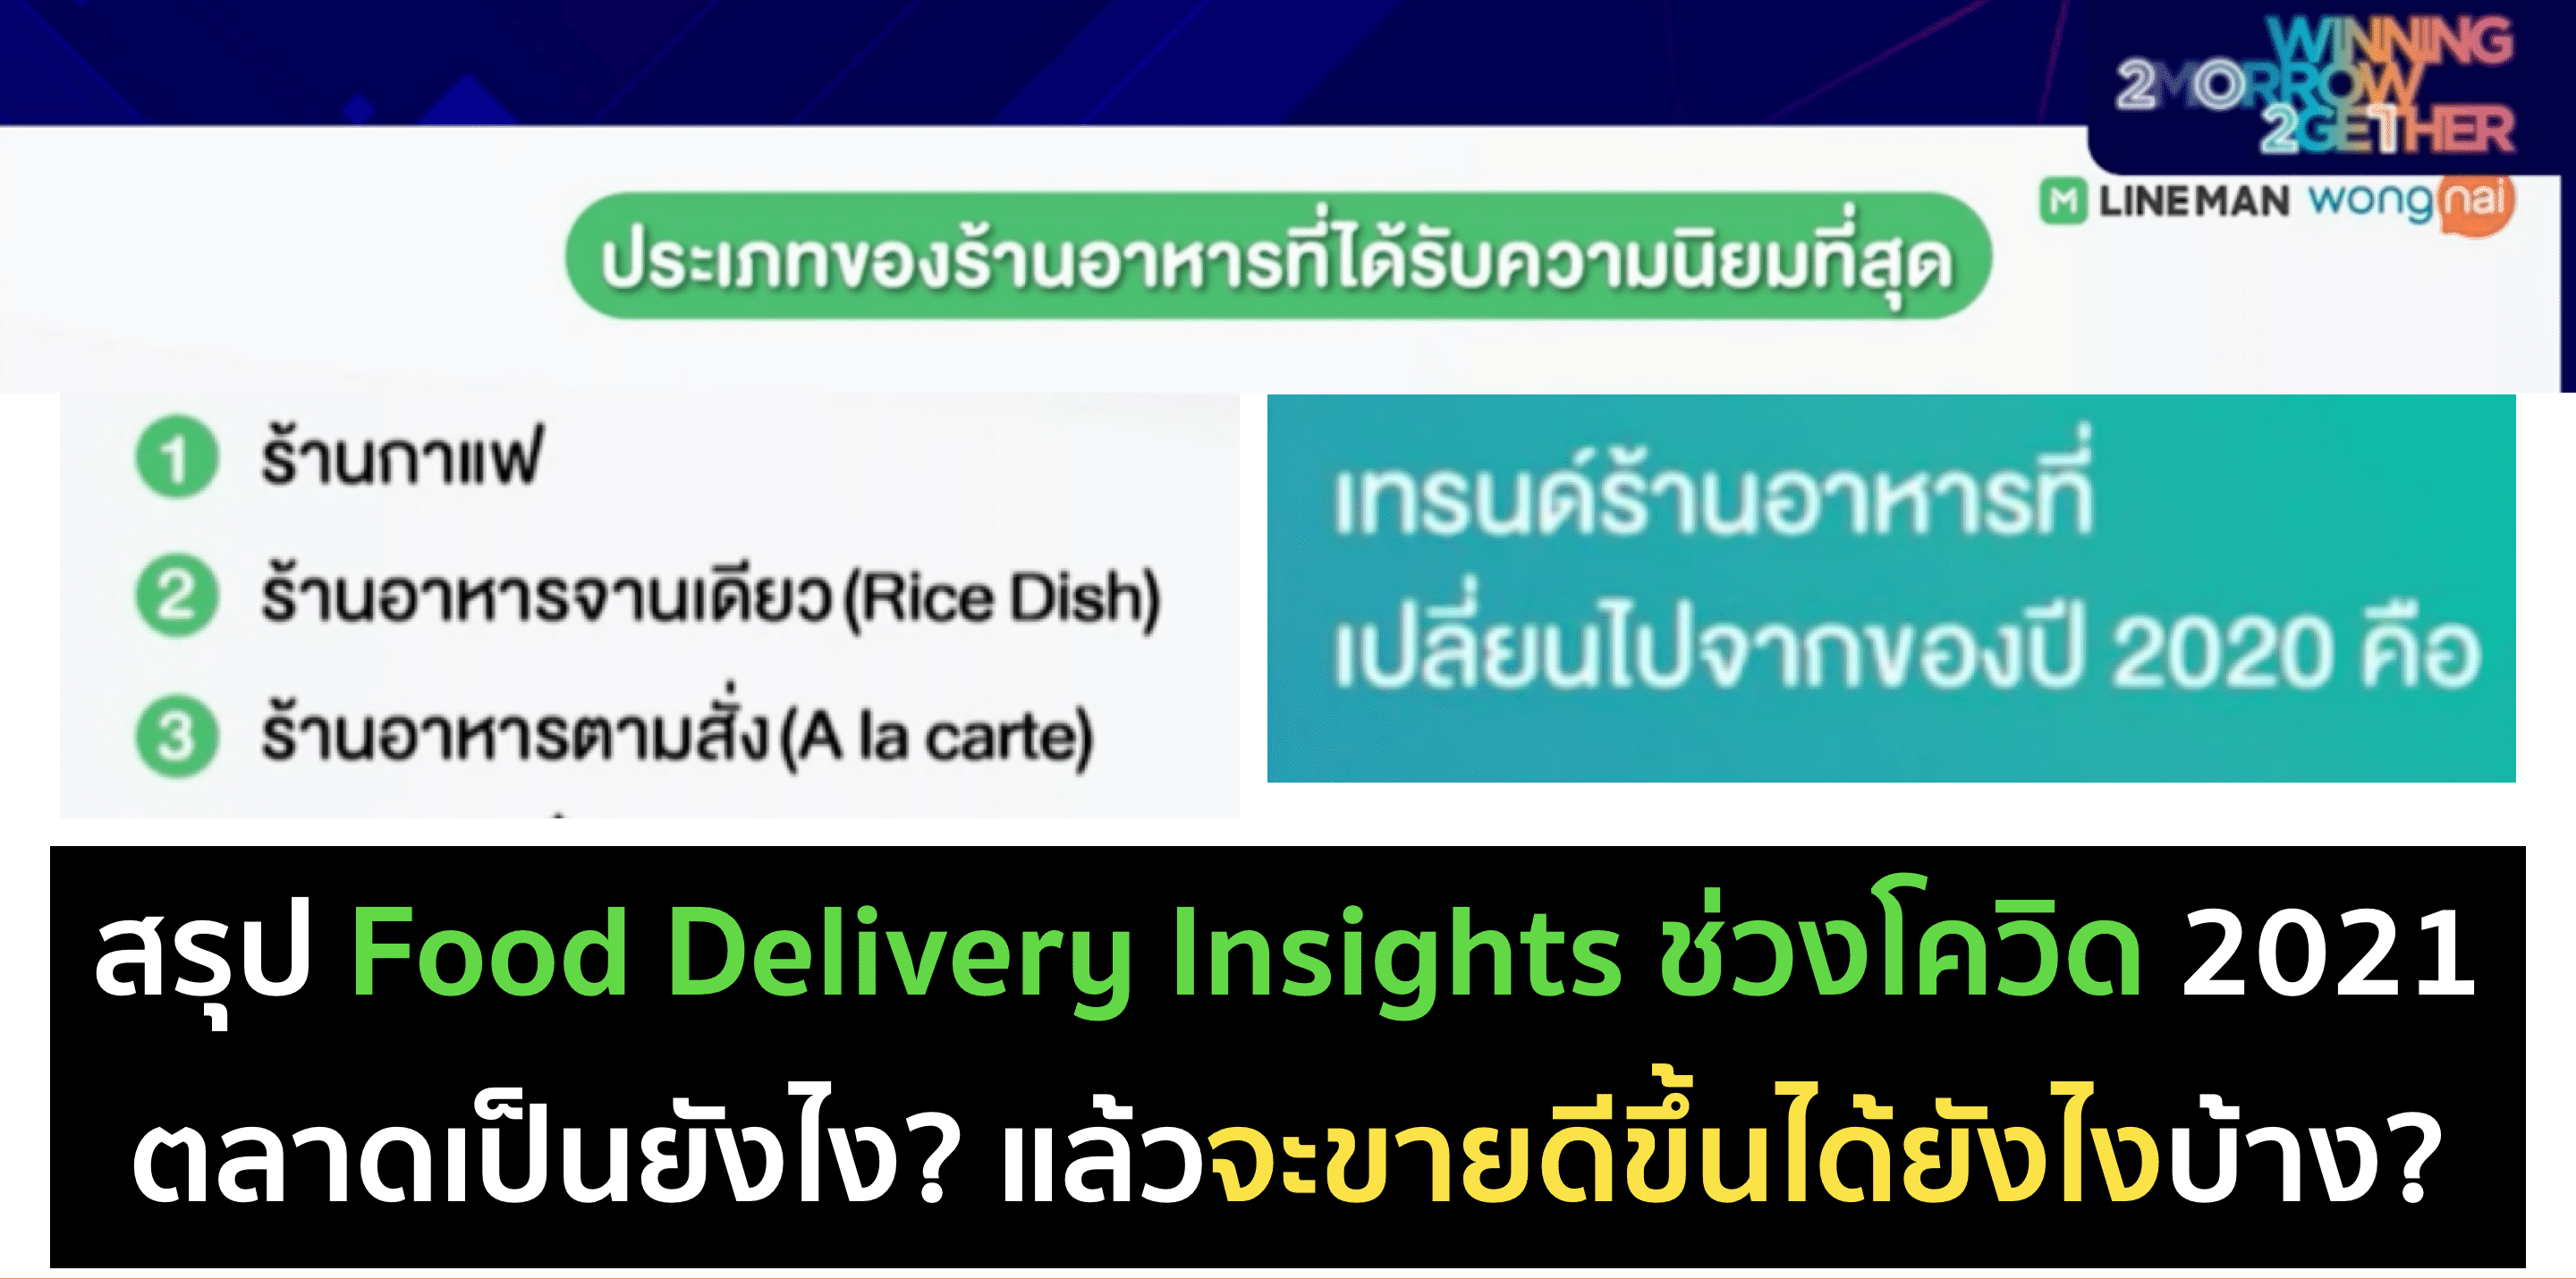 Food Delivery Insight ช่วงโควิด 2021 จาก DAAT Day